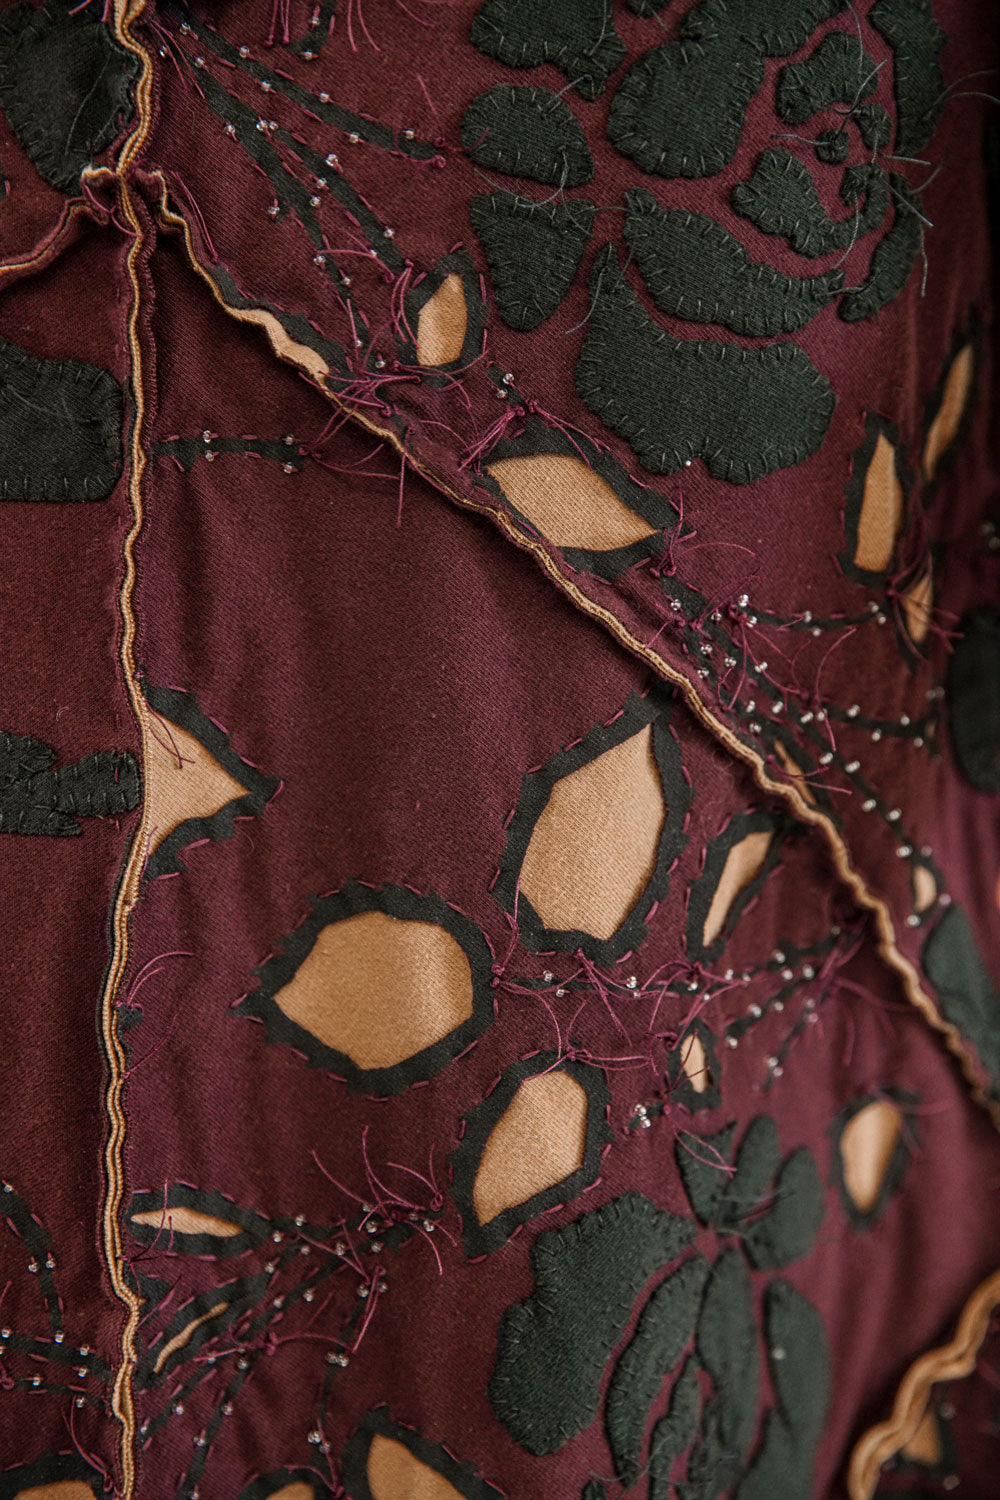 Alabama Chanin Fernando Rose Plum Fabric Swatch Embroidered and Beaded Designs in Supima 100% Organic and Upcycled Cotton Jersey with beading